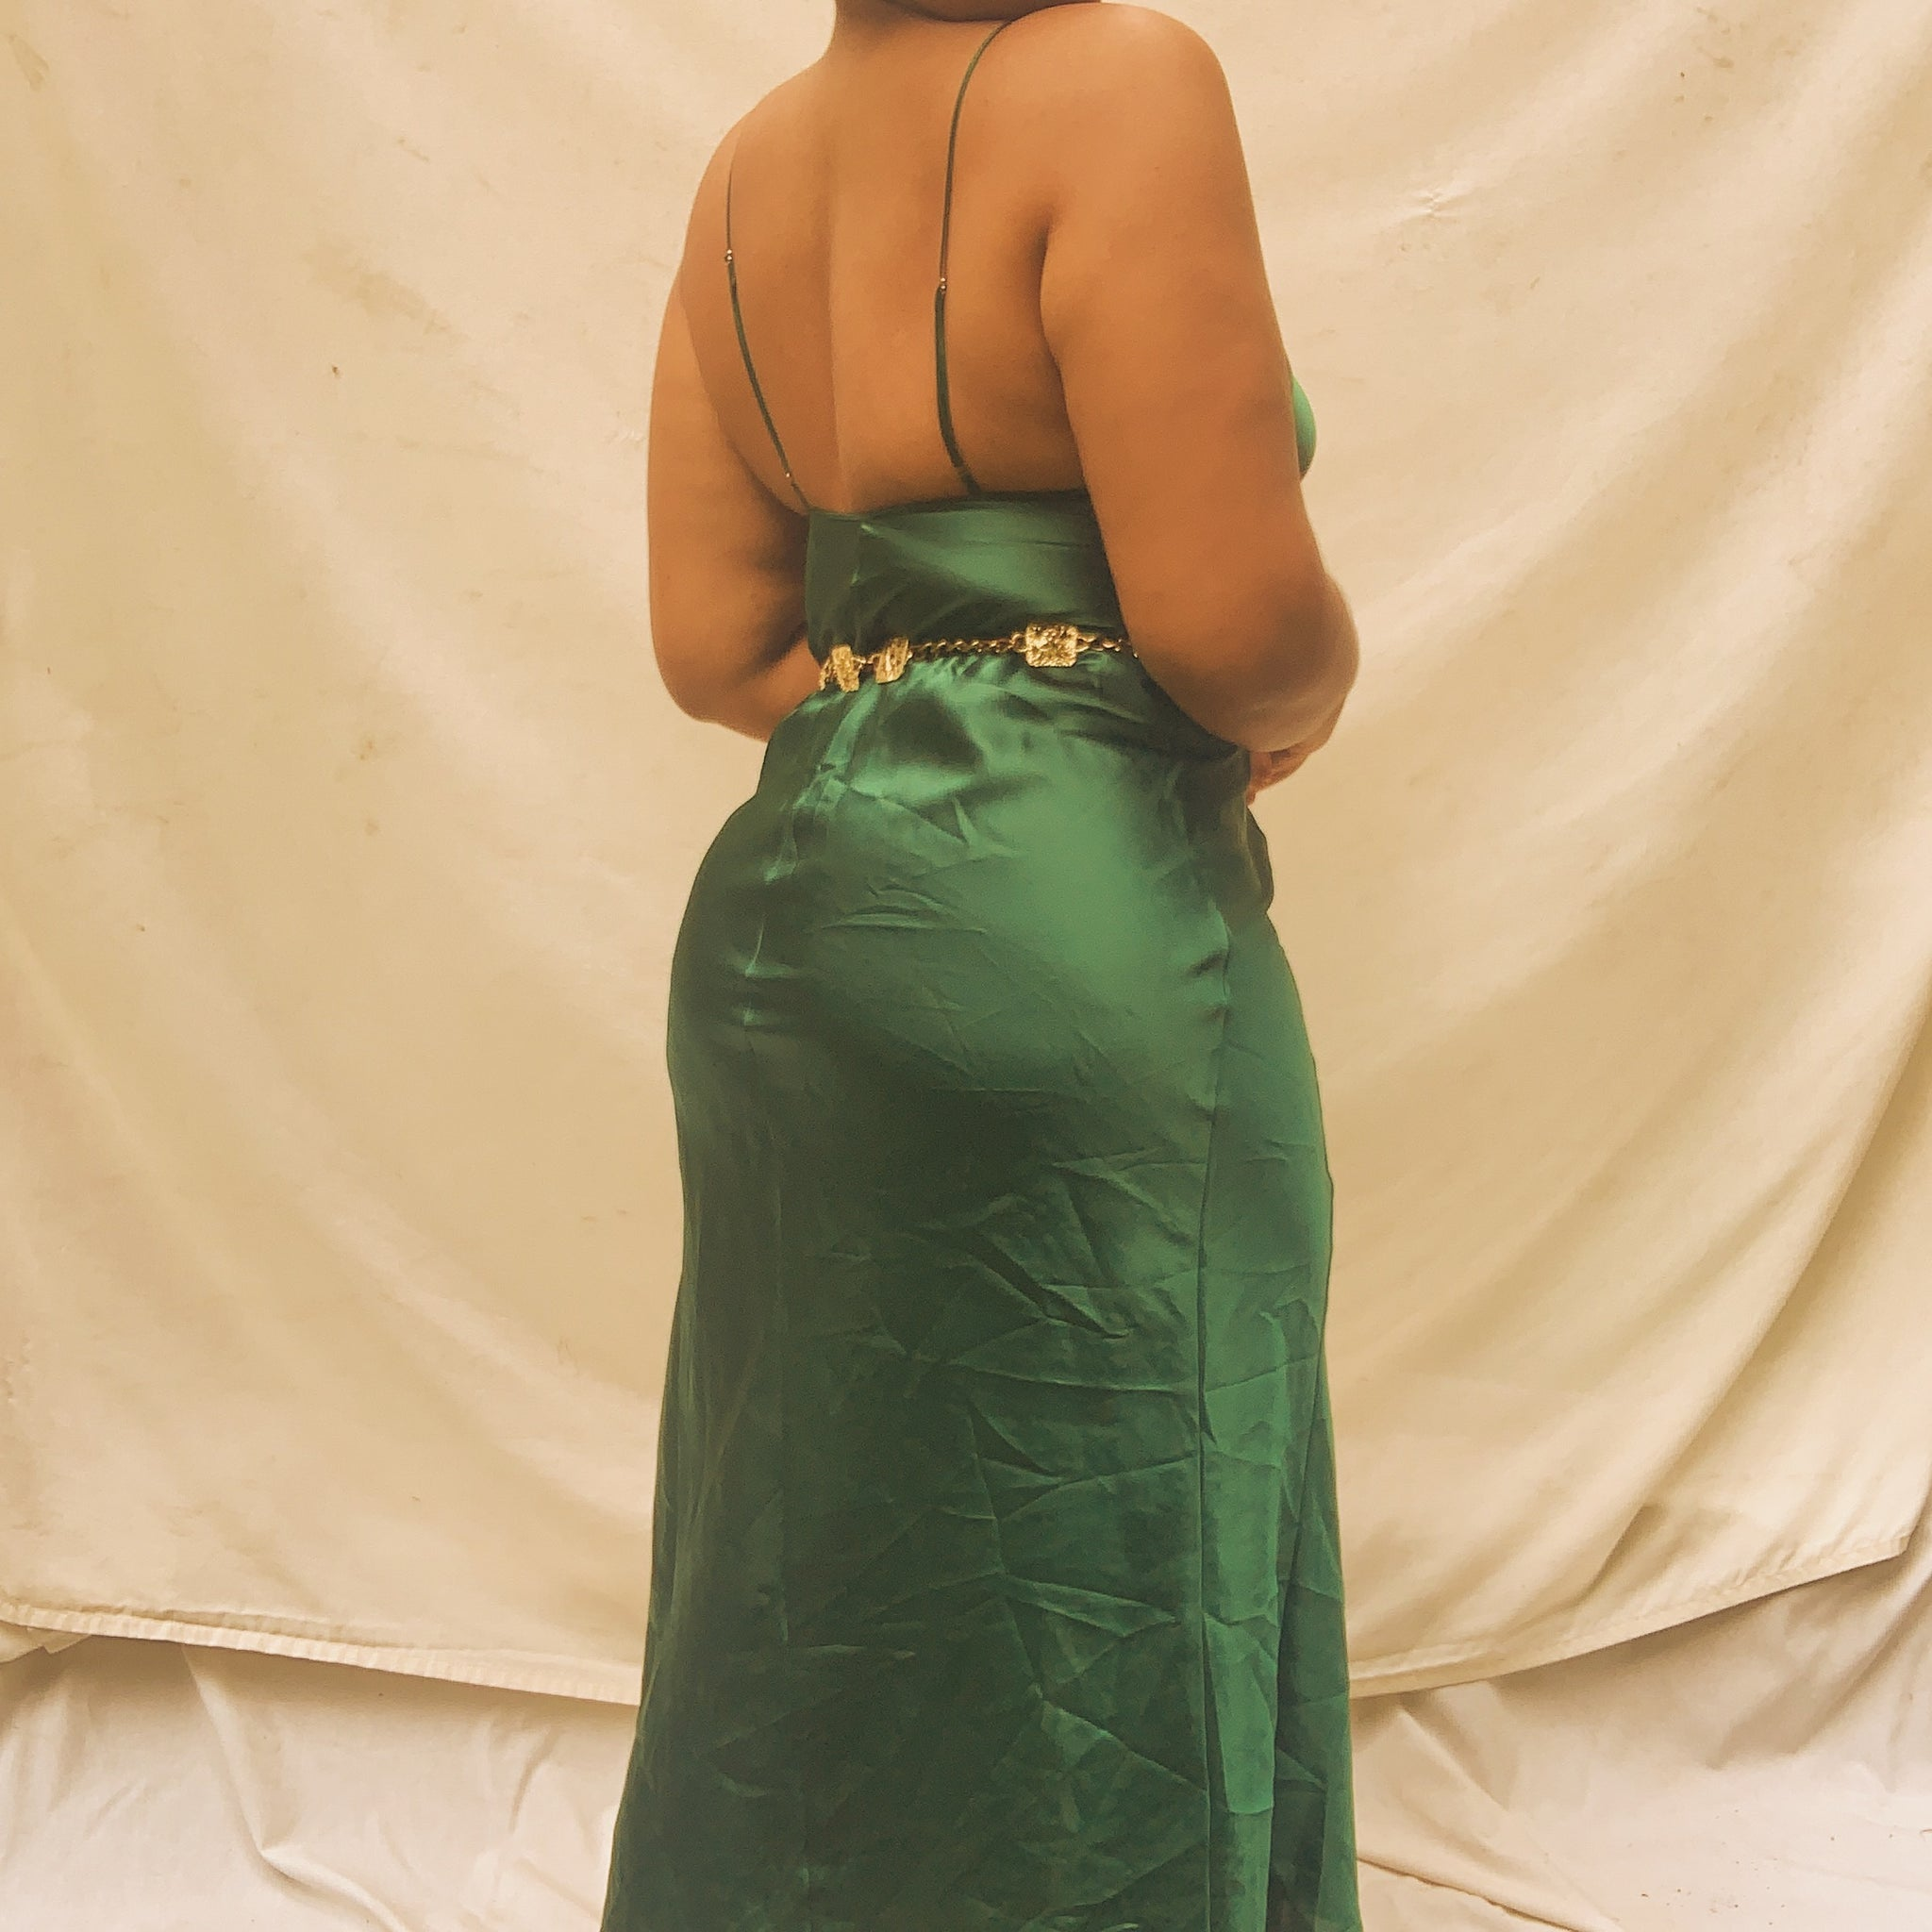 'Elvira' Green Silky Midi Slip Dress With Thigh Slit (M/L) - Shop Vanilla Vintage